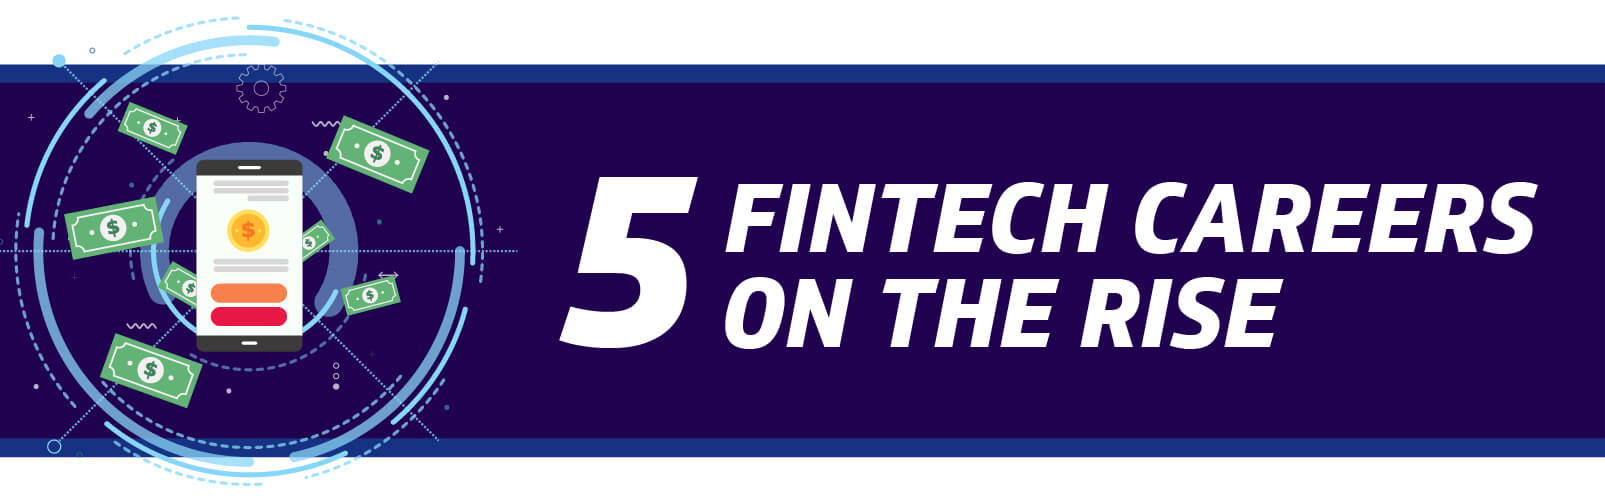 5 Fintech Careers on the Rise